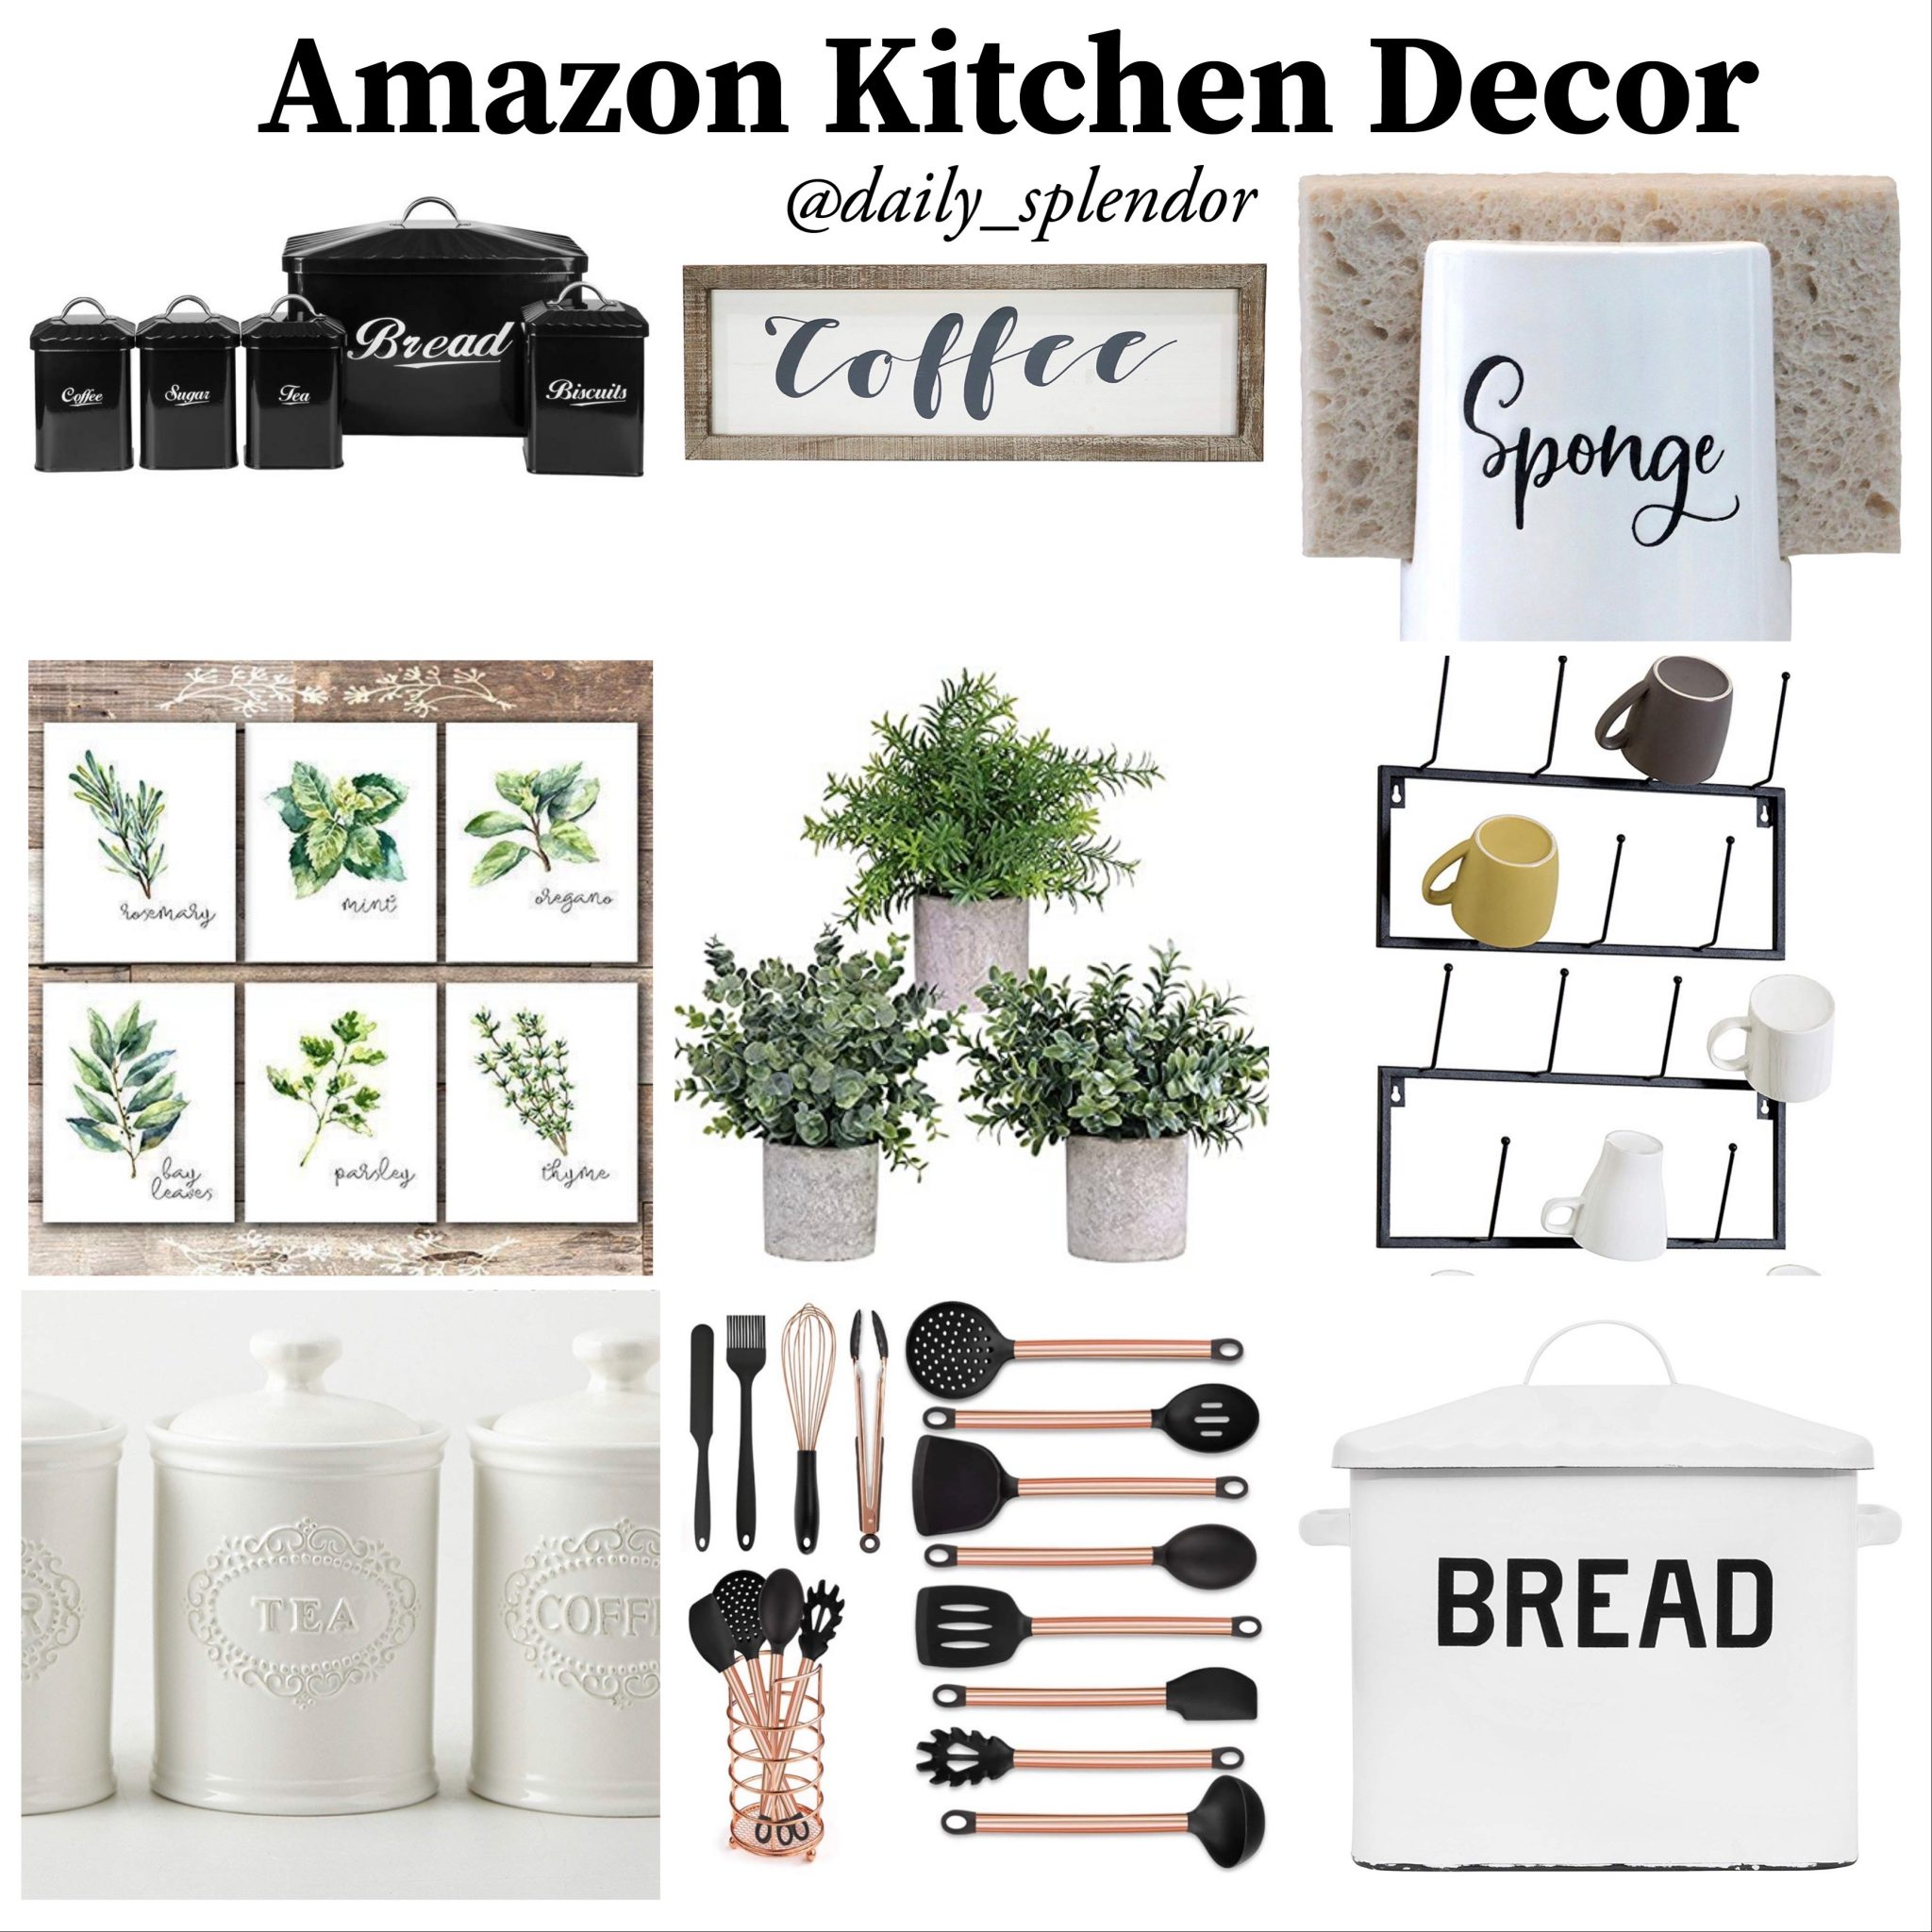 Amazon Kitchen Decor | Daily Splendor Life and Style Blog #kitchendecor #amazonhome #farmhousekitchen #modernfarmhouse #kitchenfinds #amazondecor